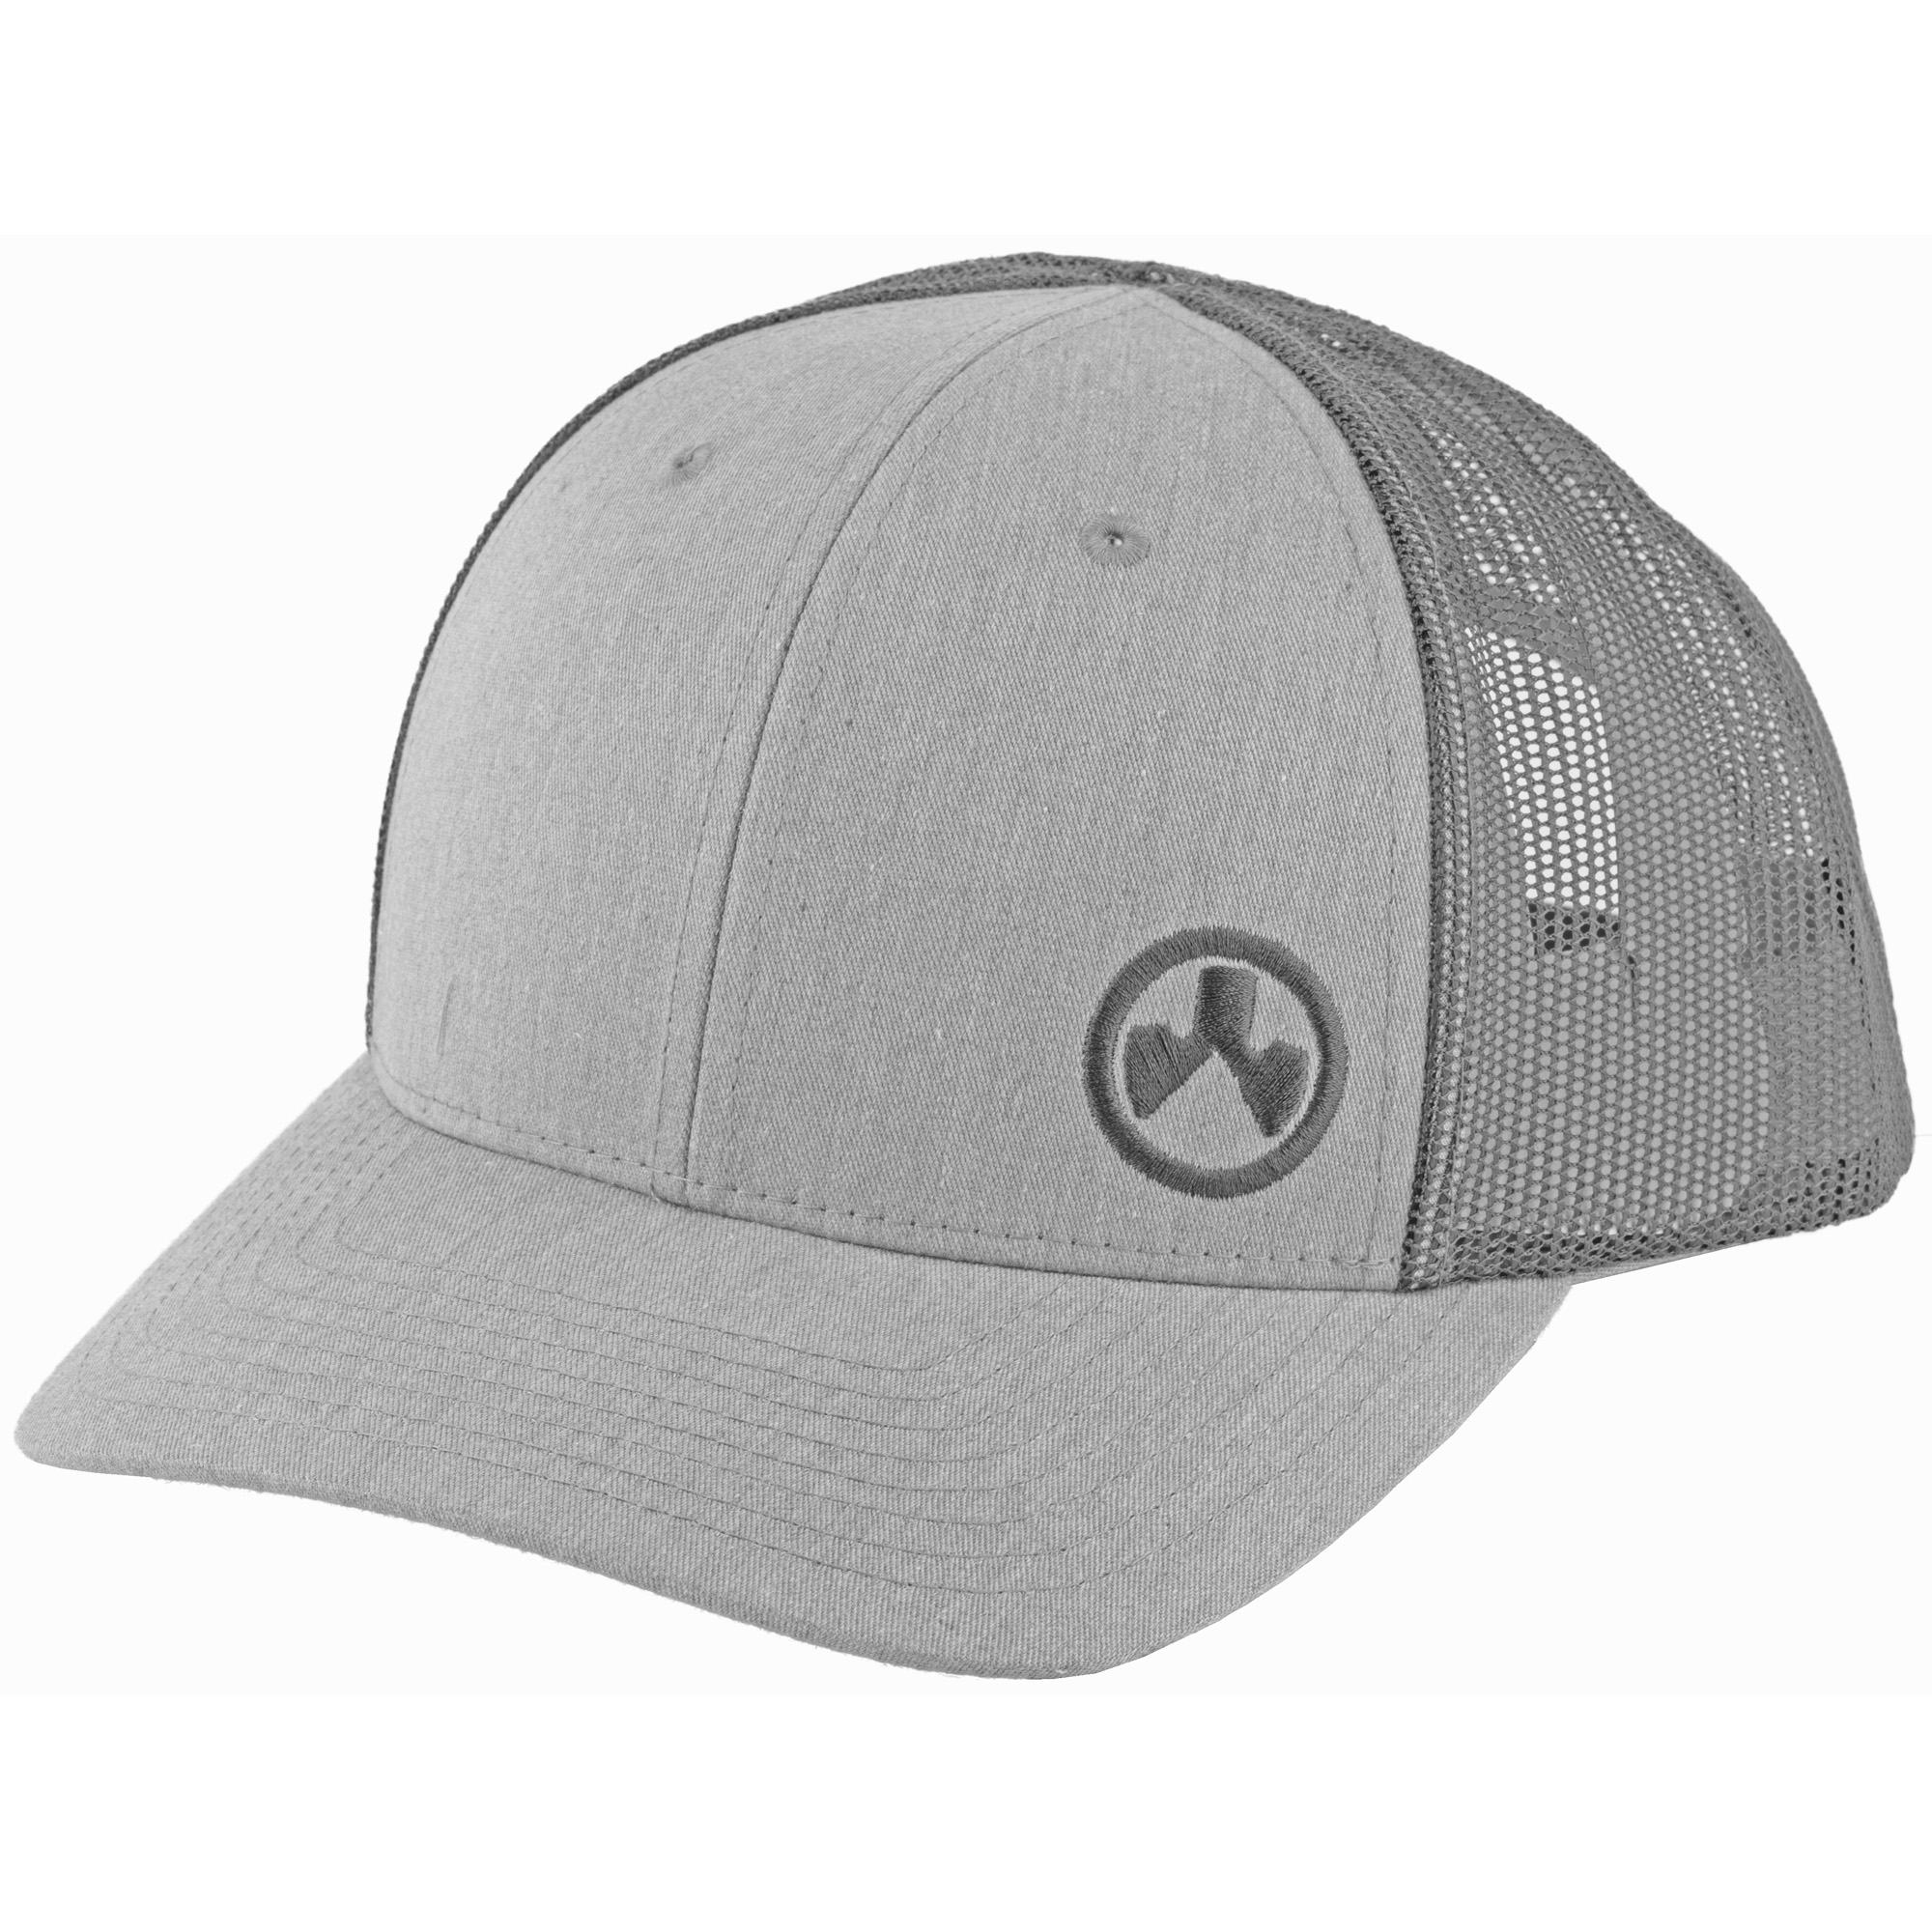 Magpul Icon Trckr Hat M/l Heathr Gry